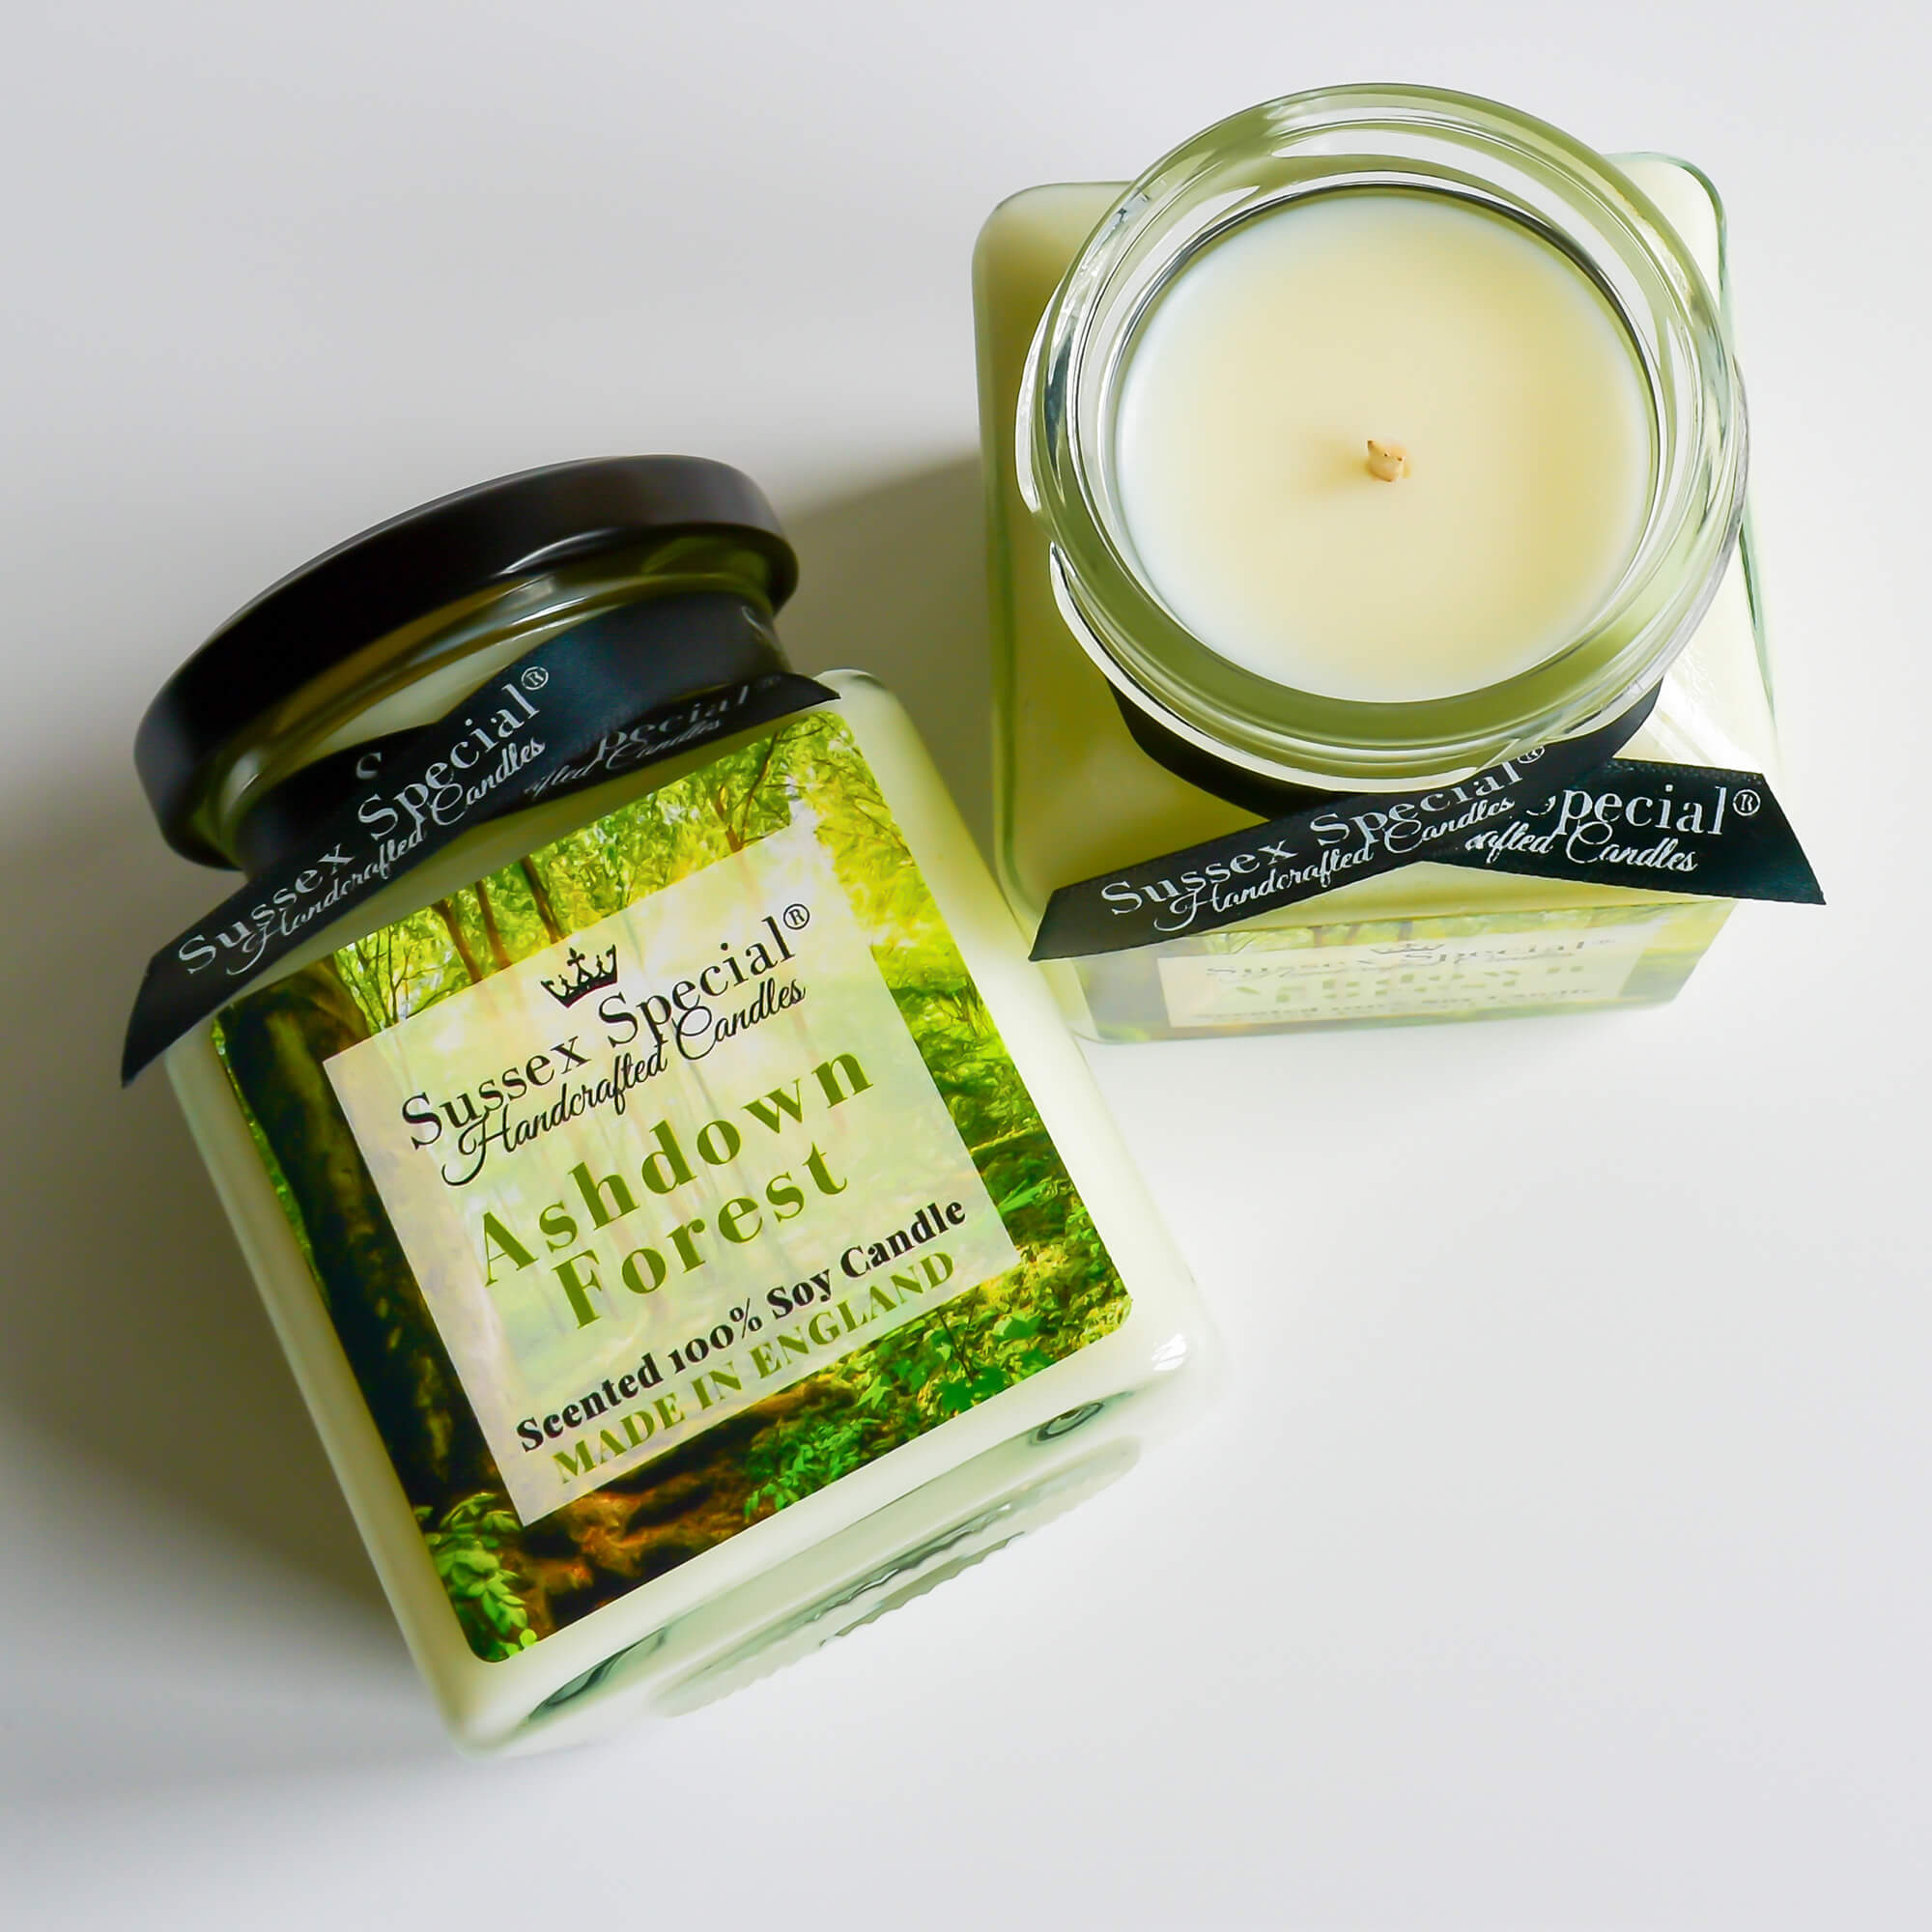 Sussex Special Ashdown Forest Luxury Scented Natural Soy Candle Peppermint, Spearmint, White Tea